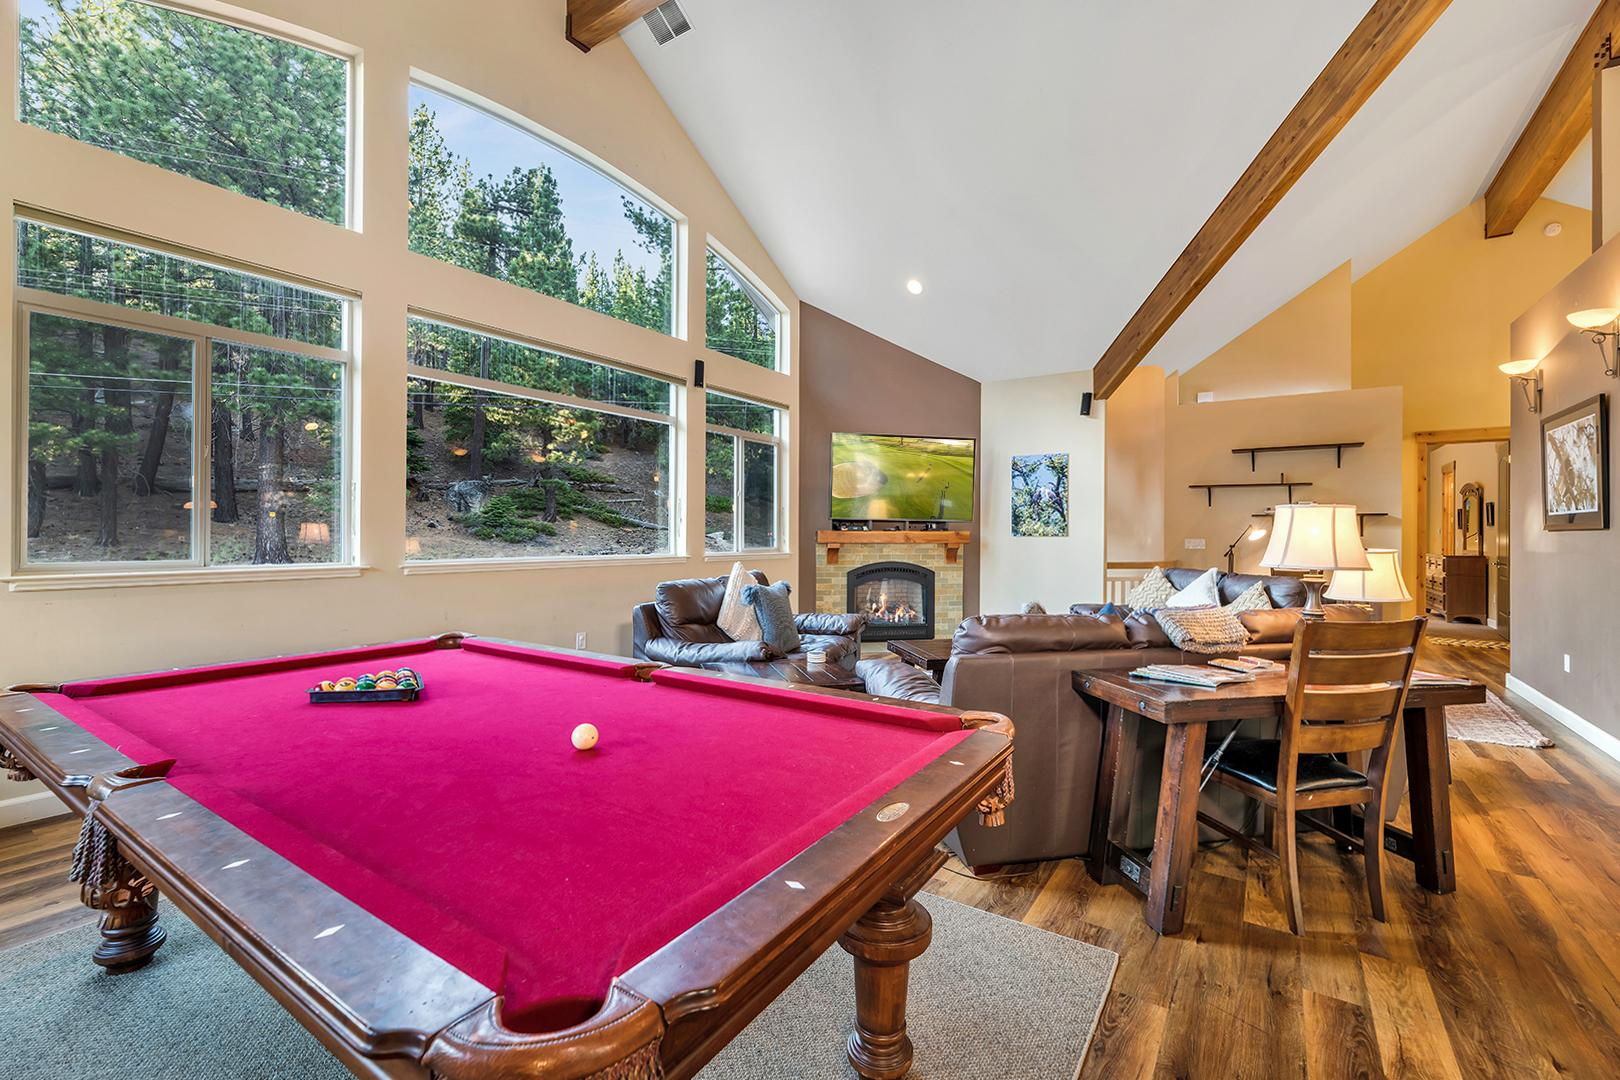 The light-filled living room is complete with a pool table.